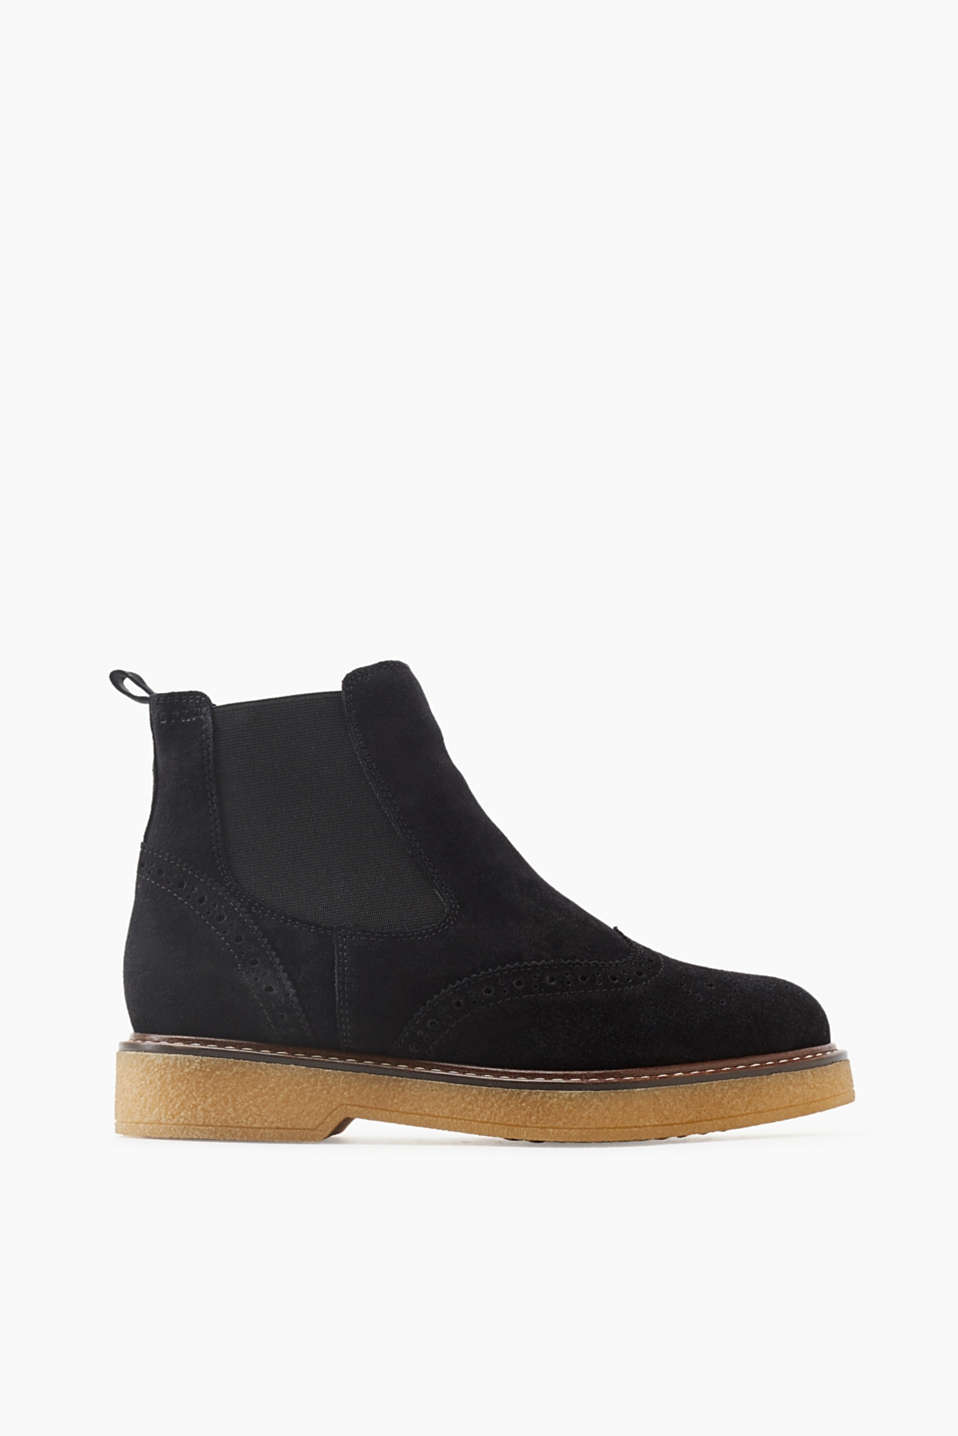 The brogue perforations and the crepe sole give this Chelsea boot with faux fur lining its new look!